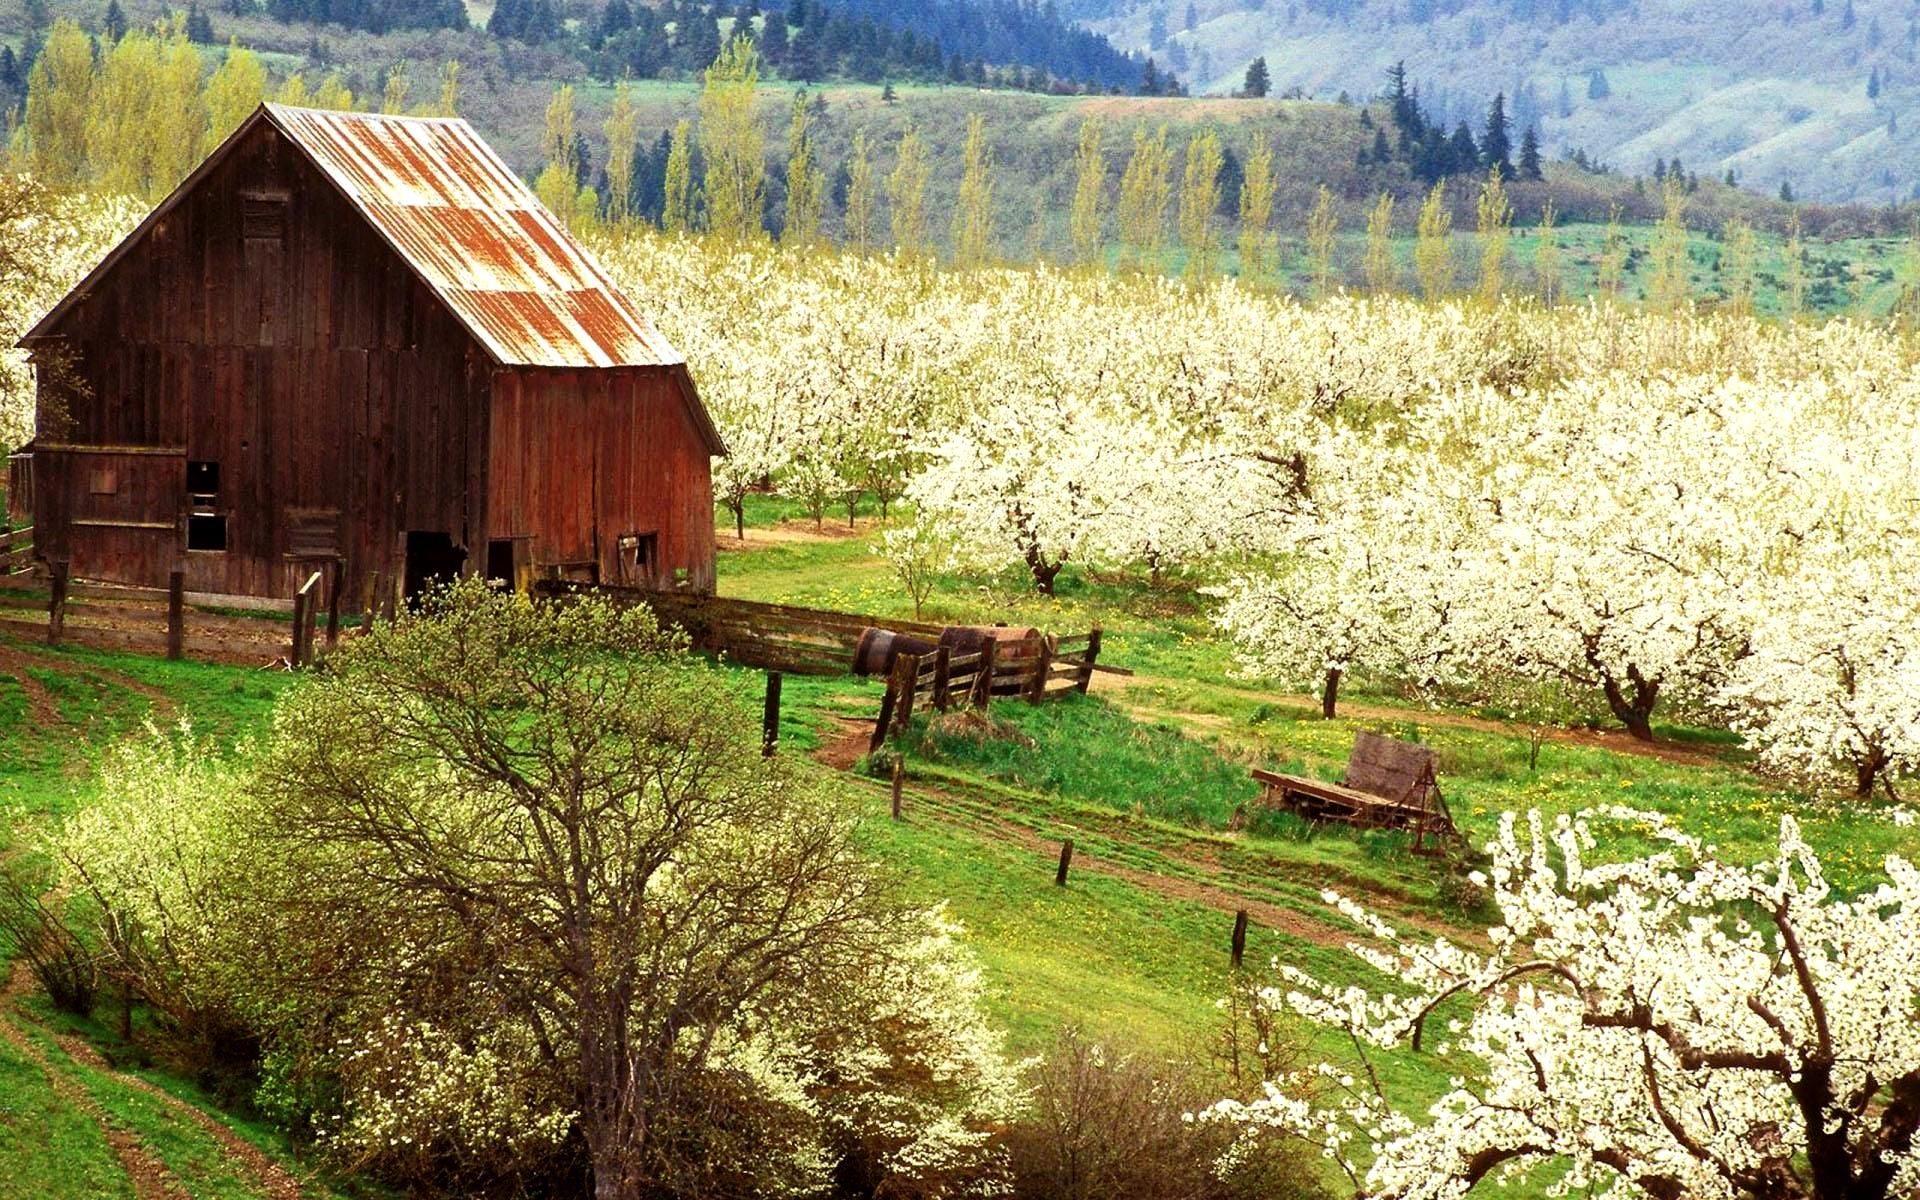 Free Desktop Backgrounds For Spring Farmskringers Com Free Download Best Hd Wallpapers And Pictures Old Barns Spring Scene Barn